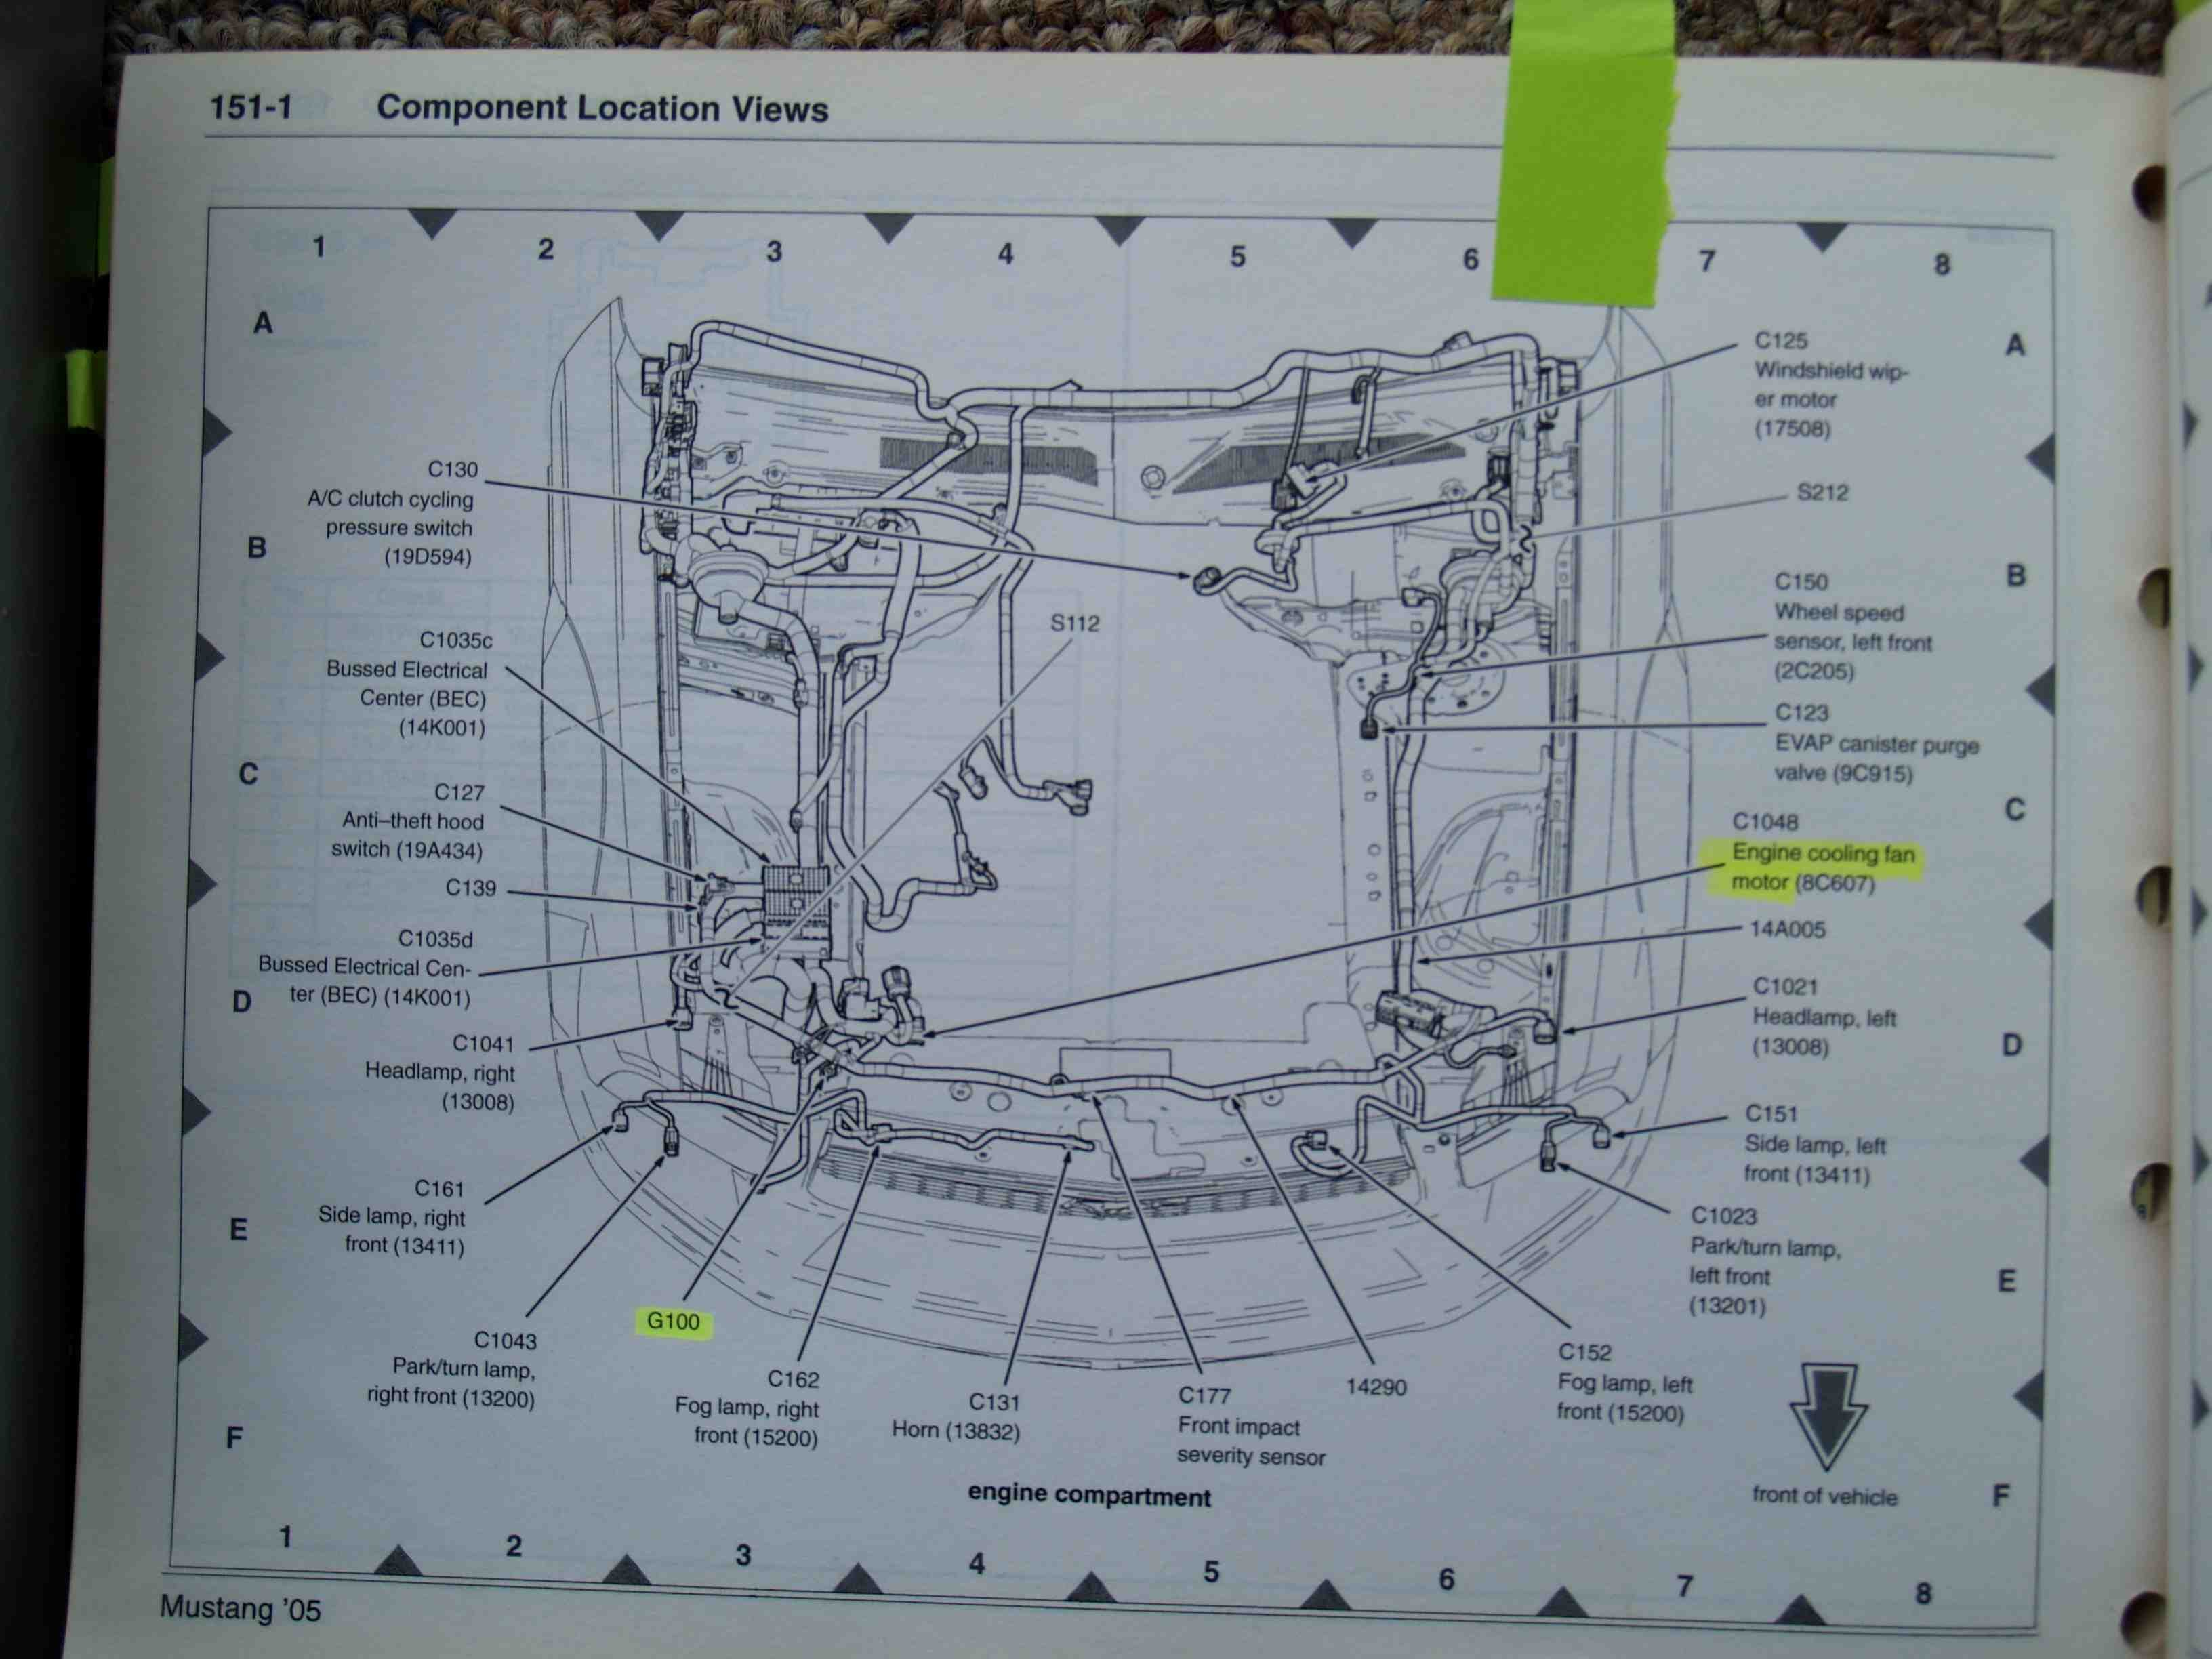 2008 GT Headlight Wiring Diagram?-p5206407-5.jpg